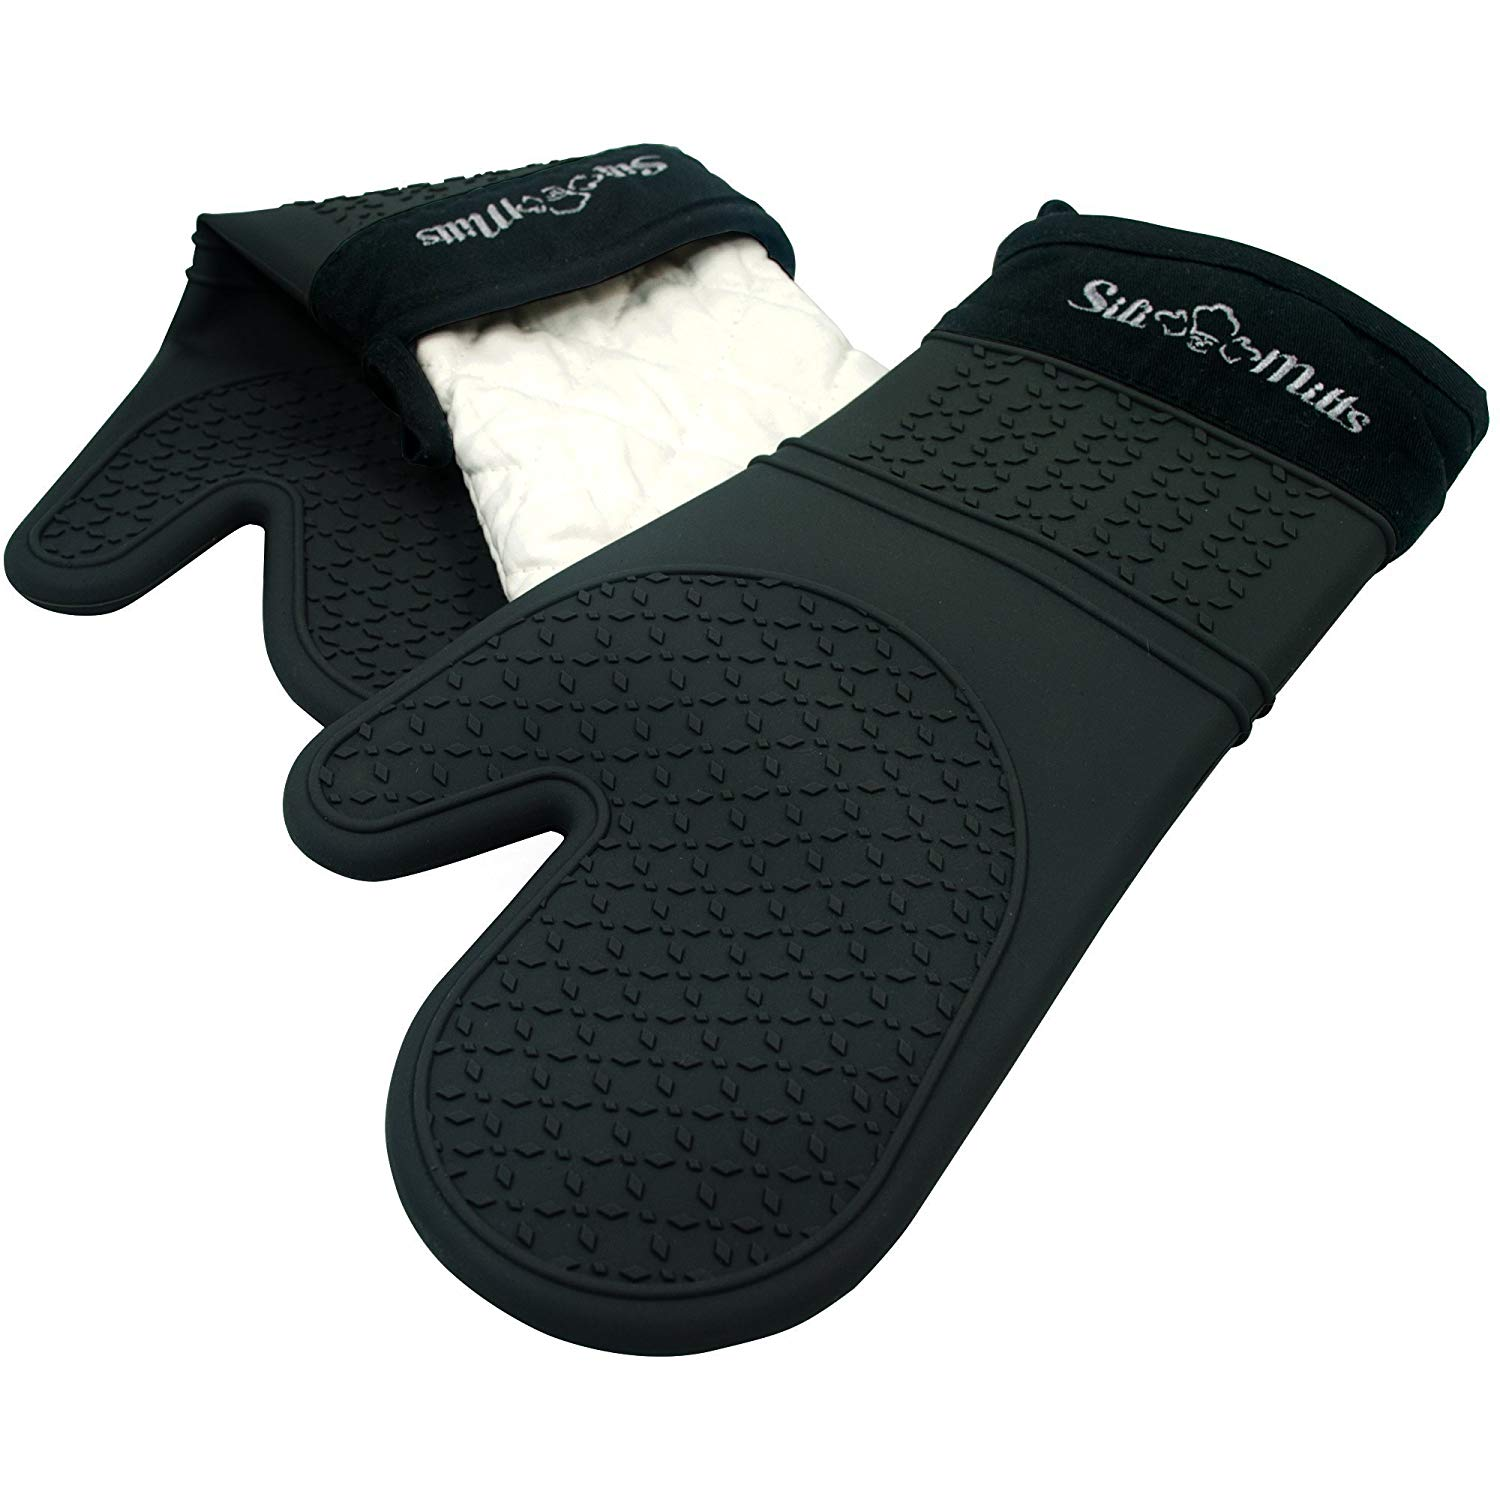 Sili-mitts black silicone oven mitts